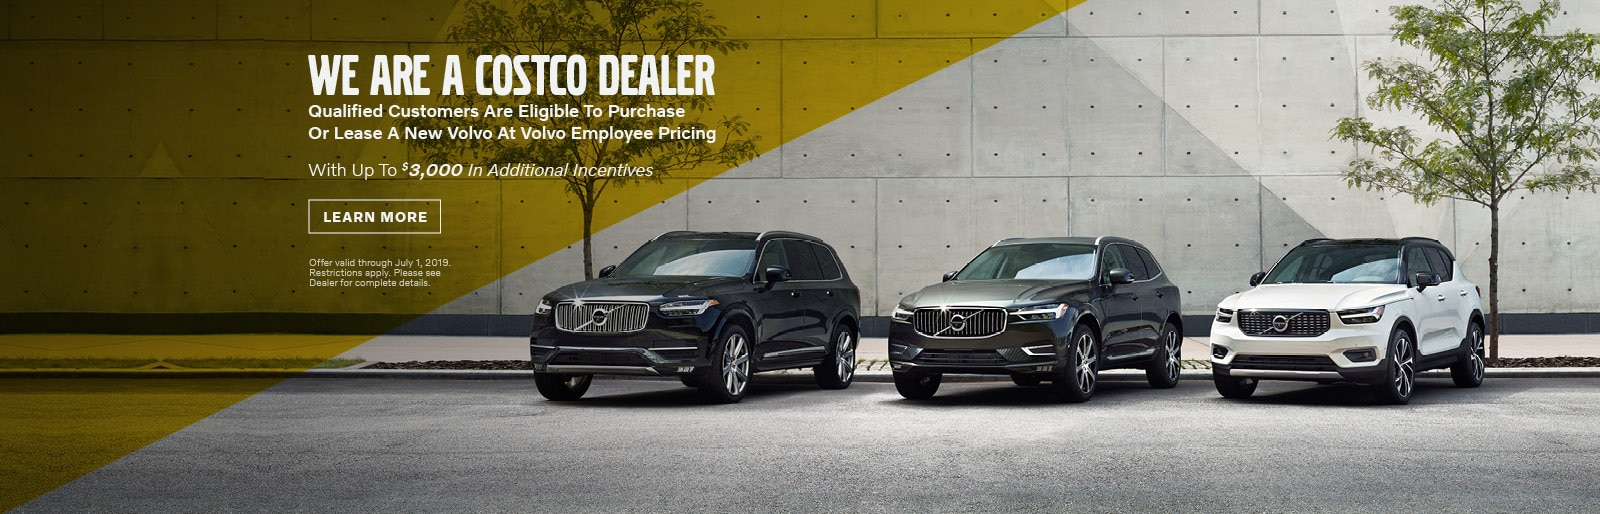 Volvo Dealers Nh >> Volvo Of Exeter New Volvo Used Car Dealership